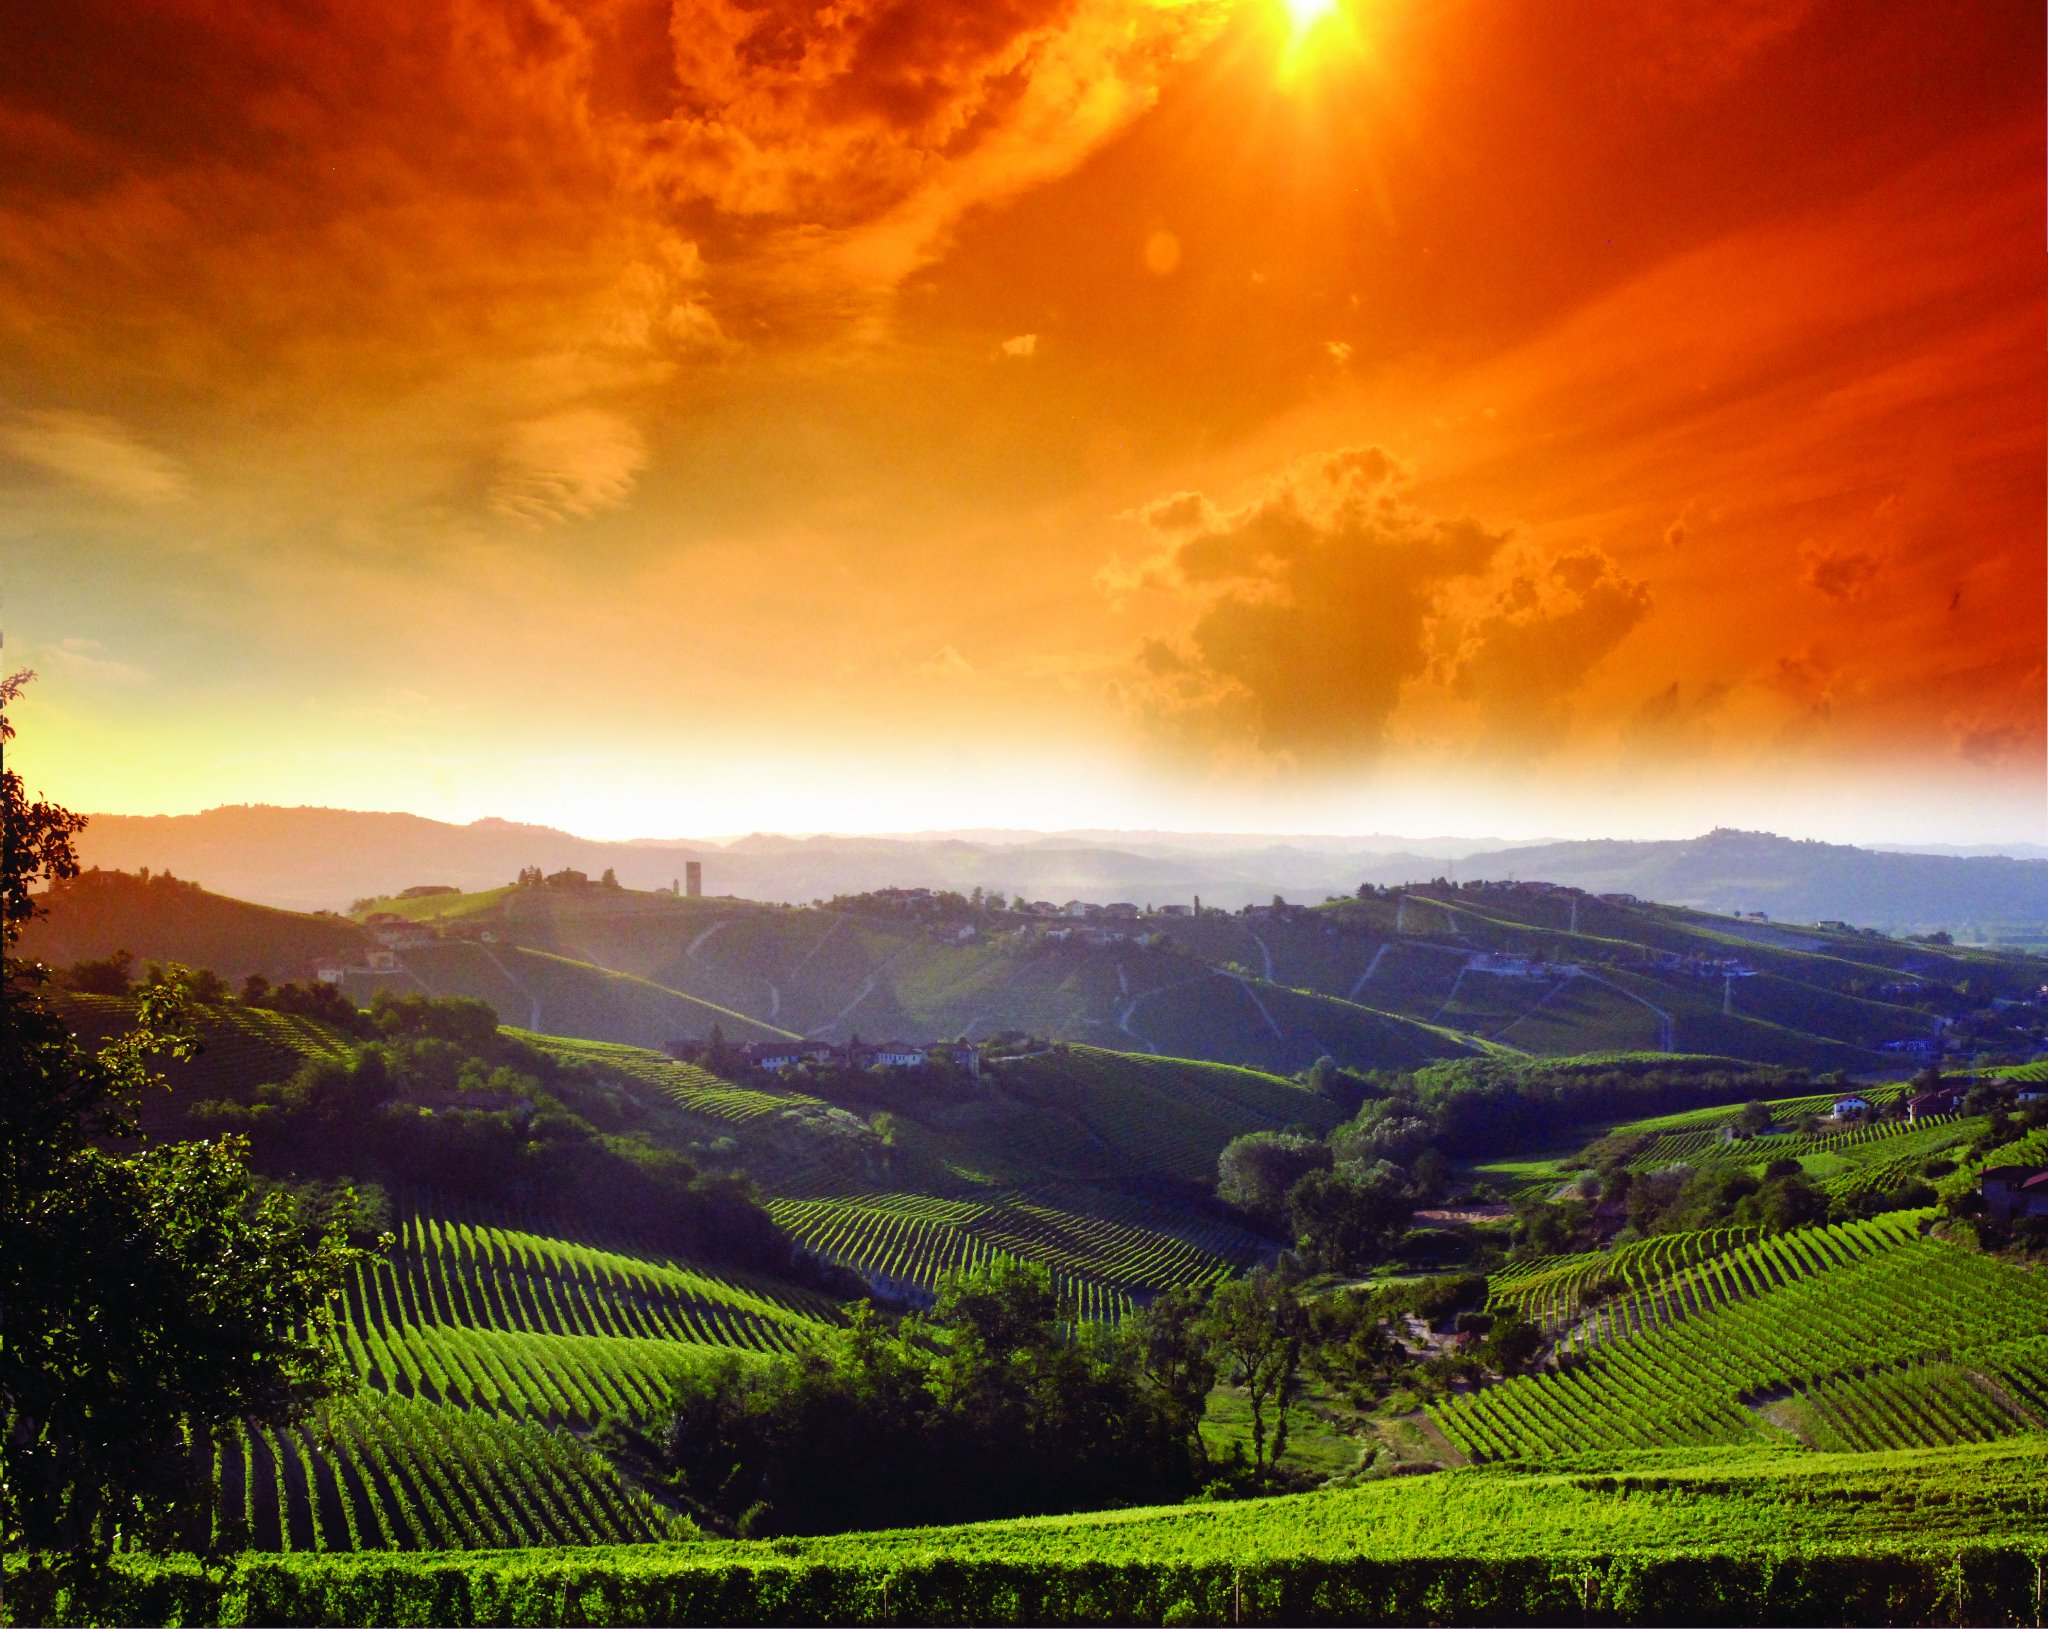 The Langhe Under the Sun with rolling hills covered in wine vineyards